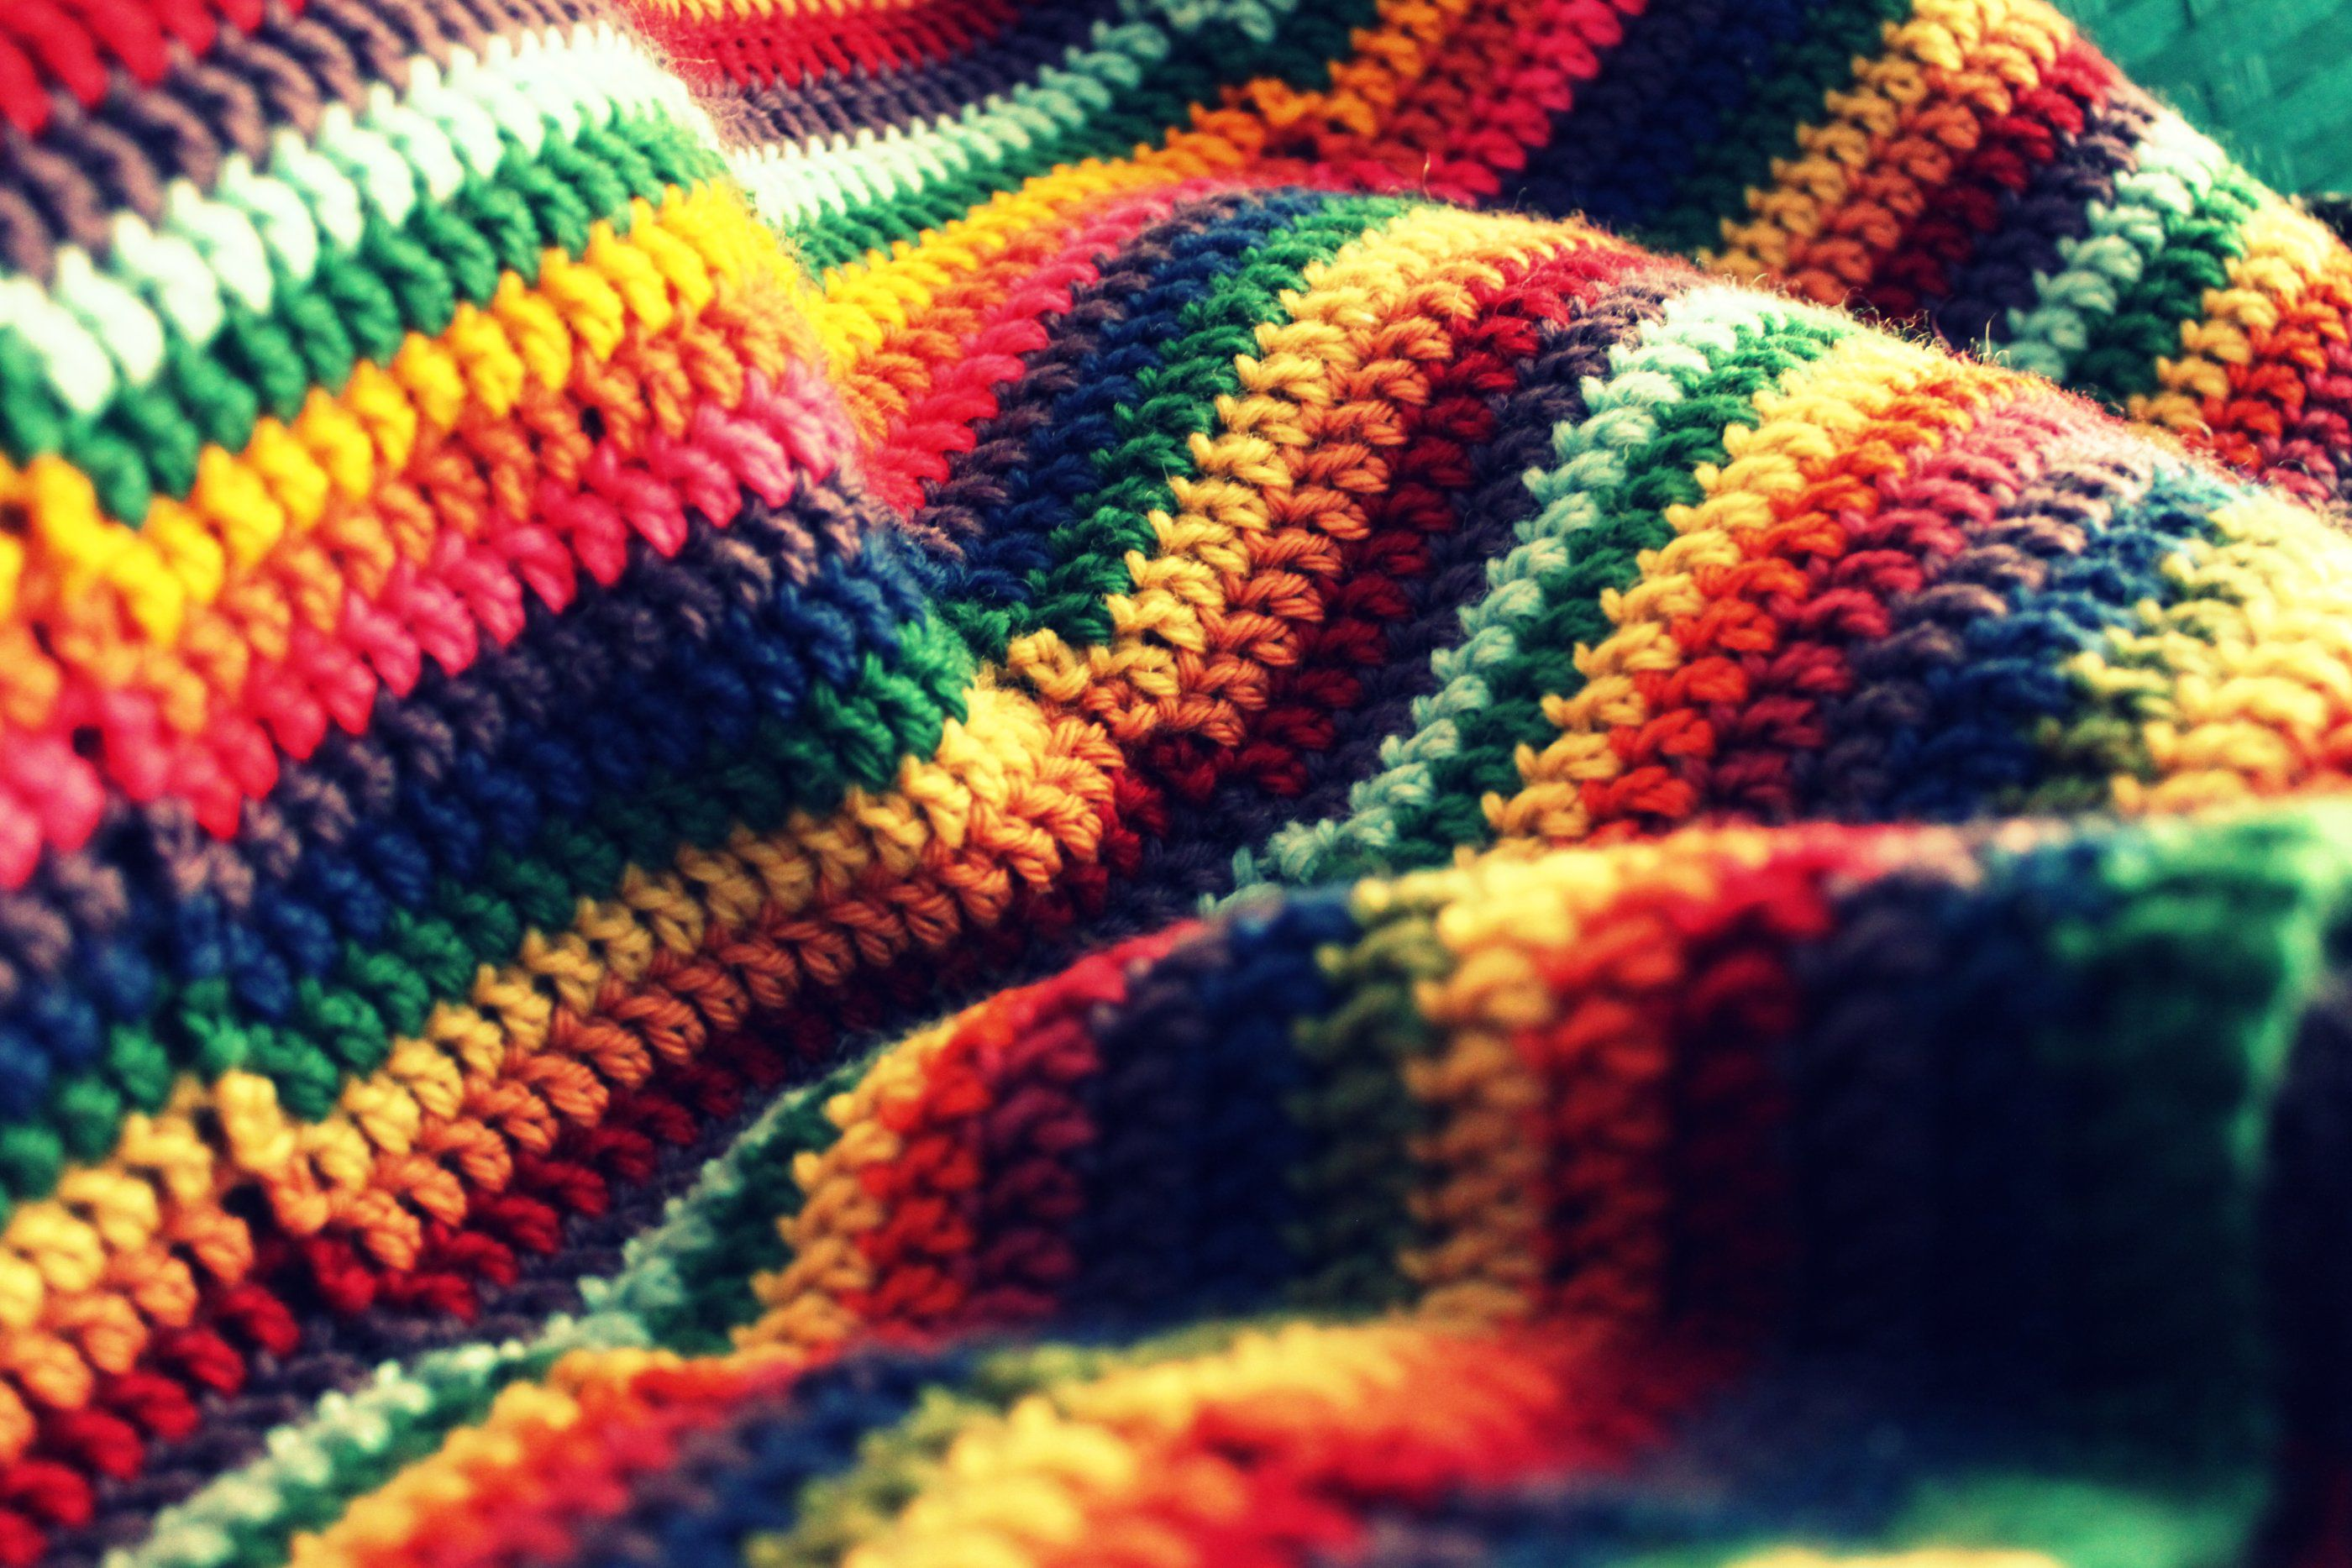 Take All of Your Scrap Yarn and Make Crochet Blankets